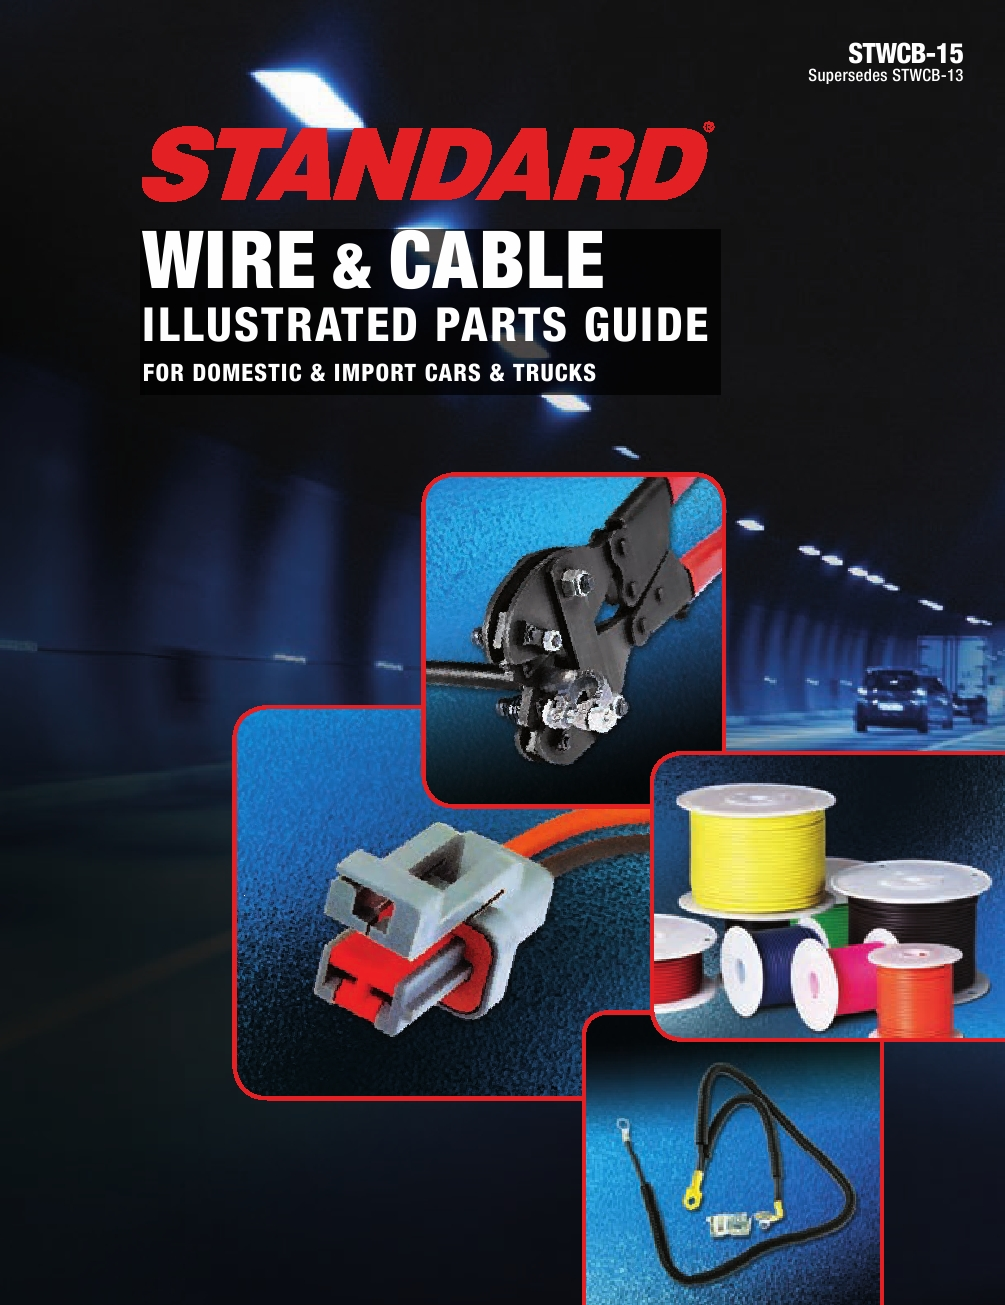 2015 Standard Wire & Cable Illustrated Parts Guide - Powered by ...